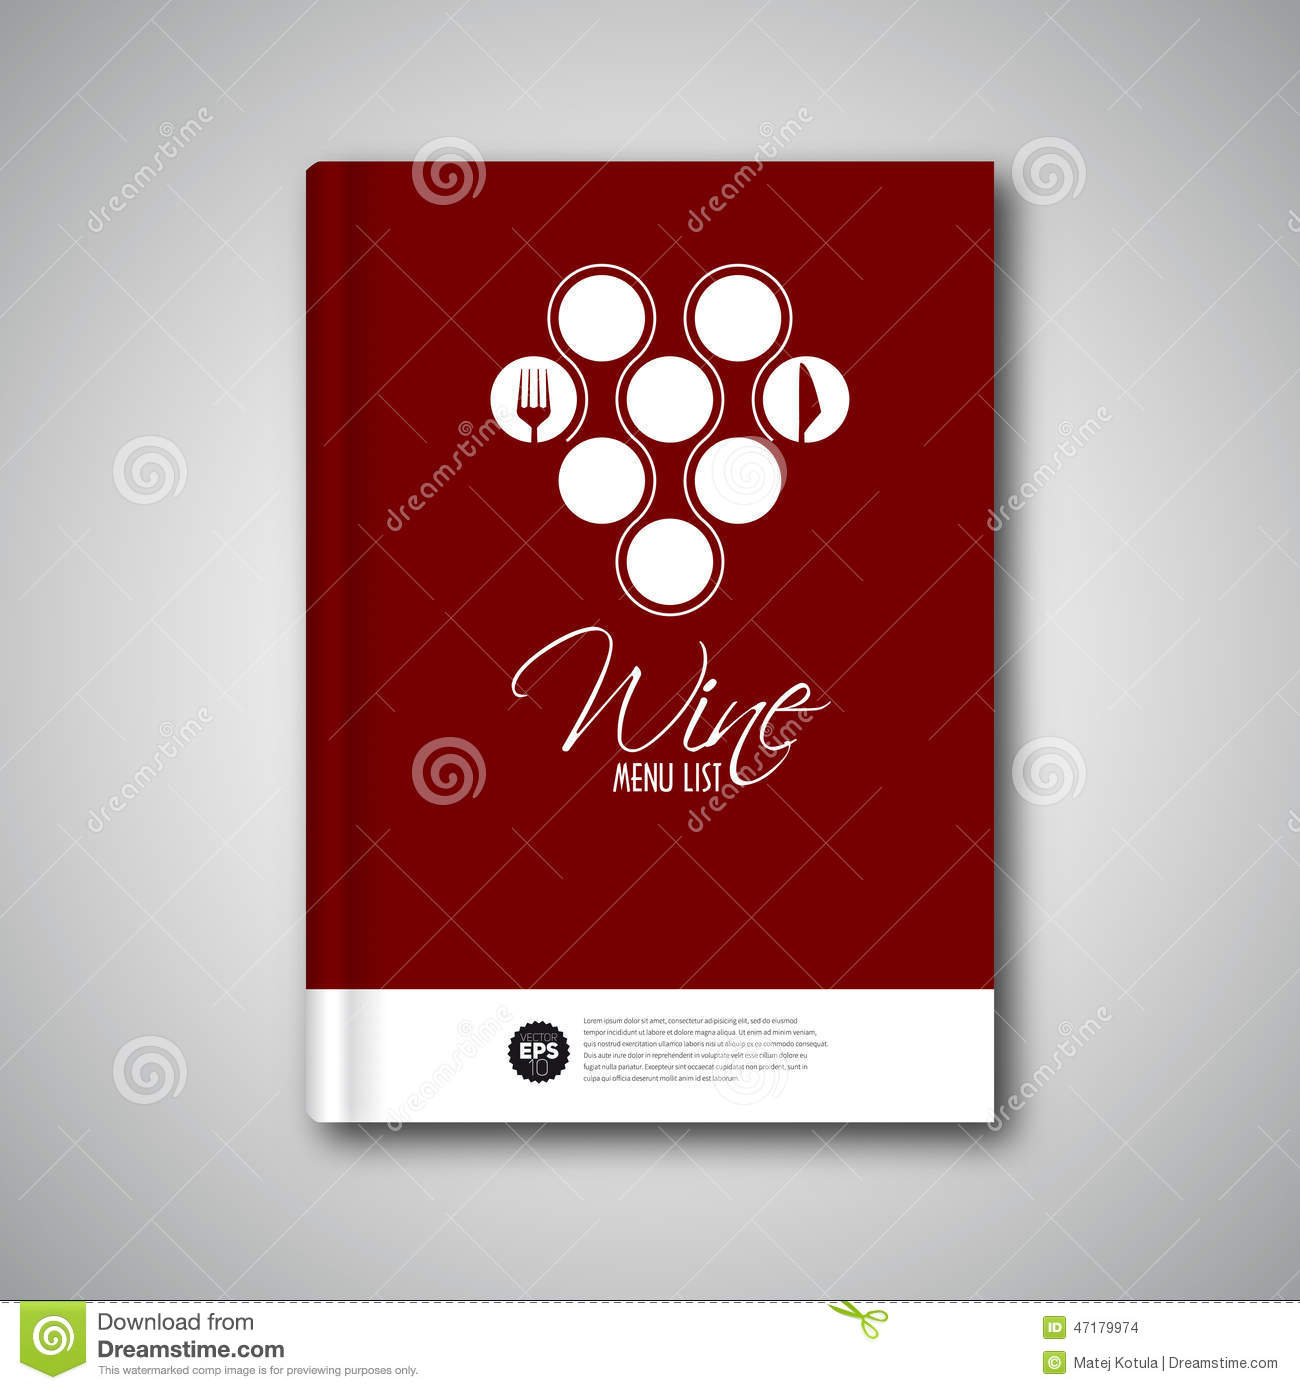 Wine menu design template cover brochure card stock for Wine brochure template free